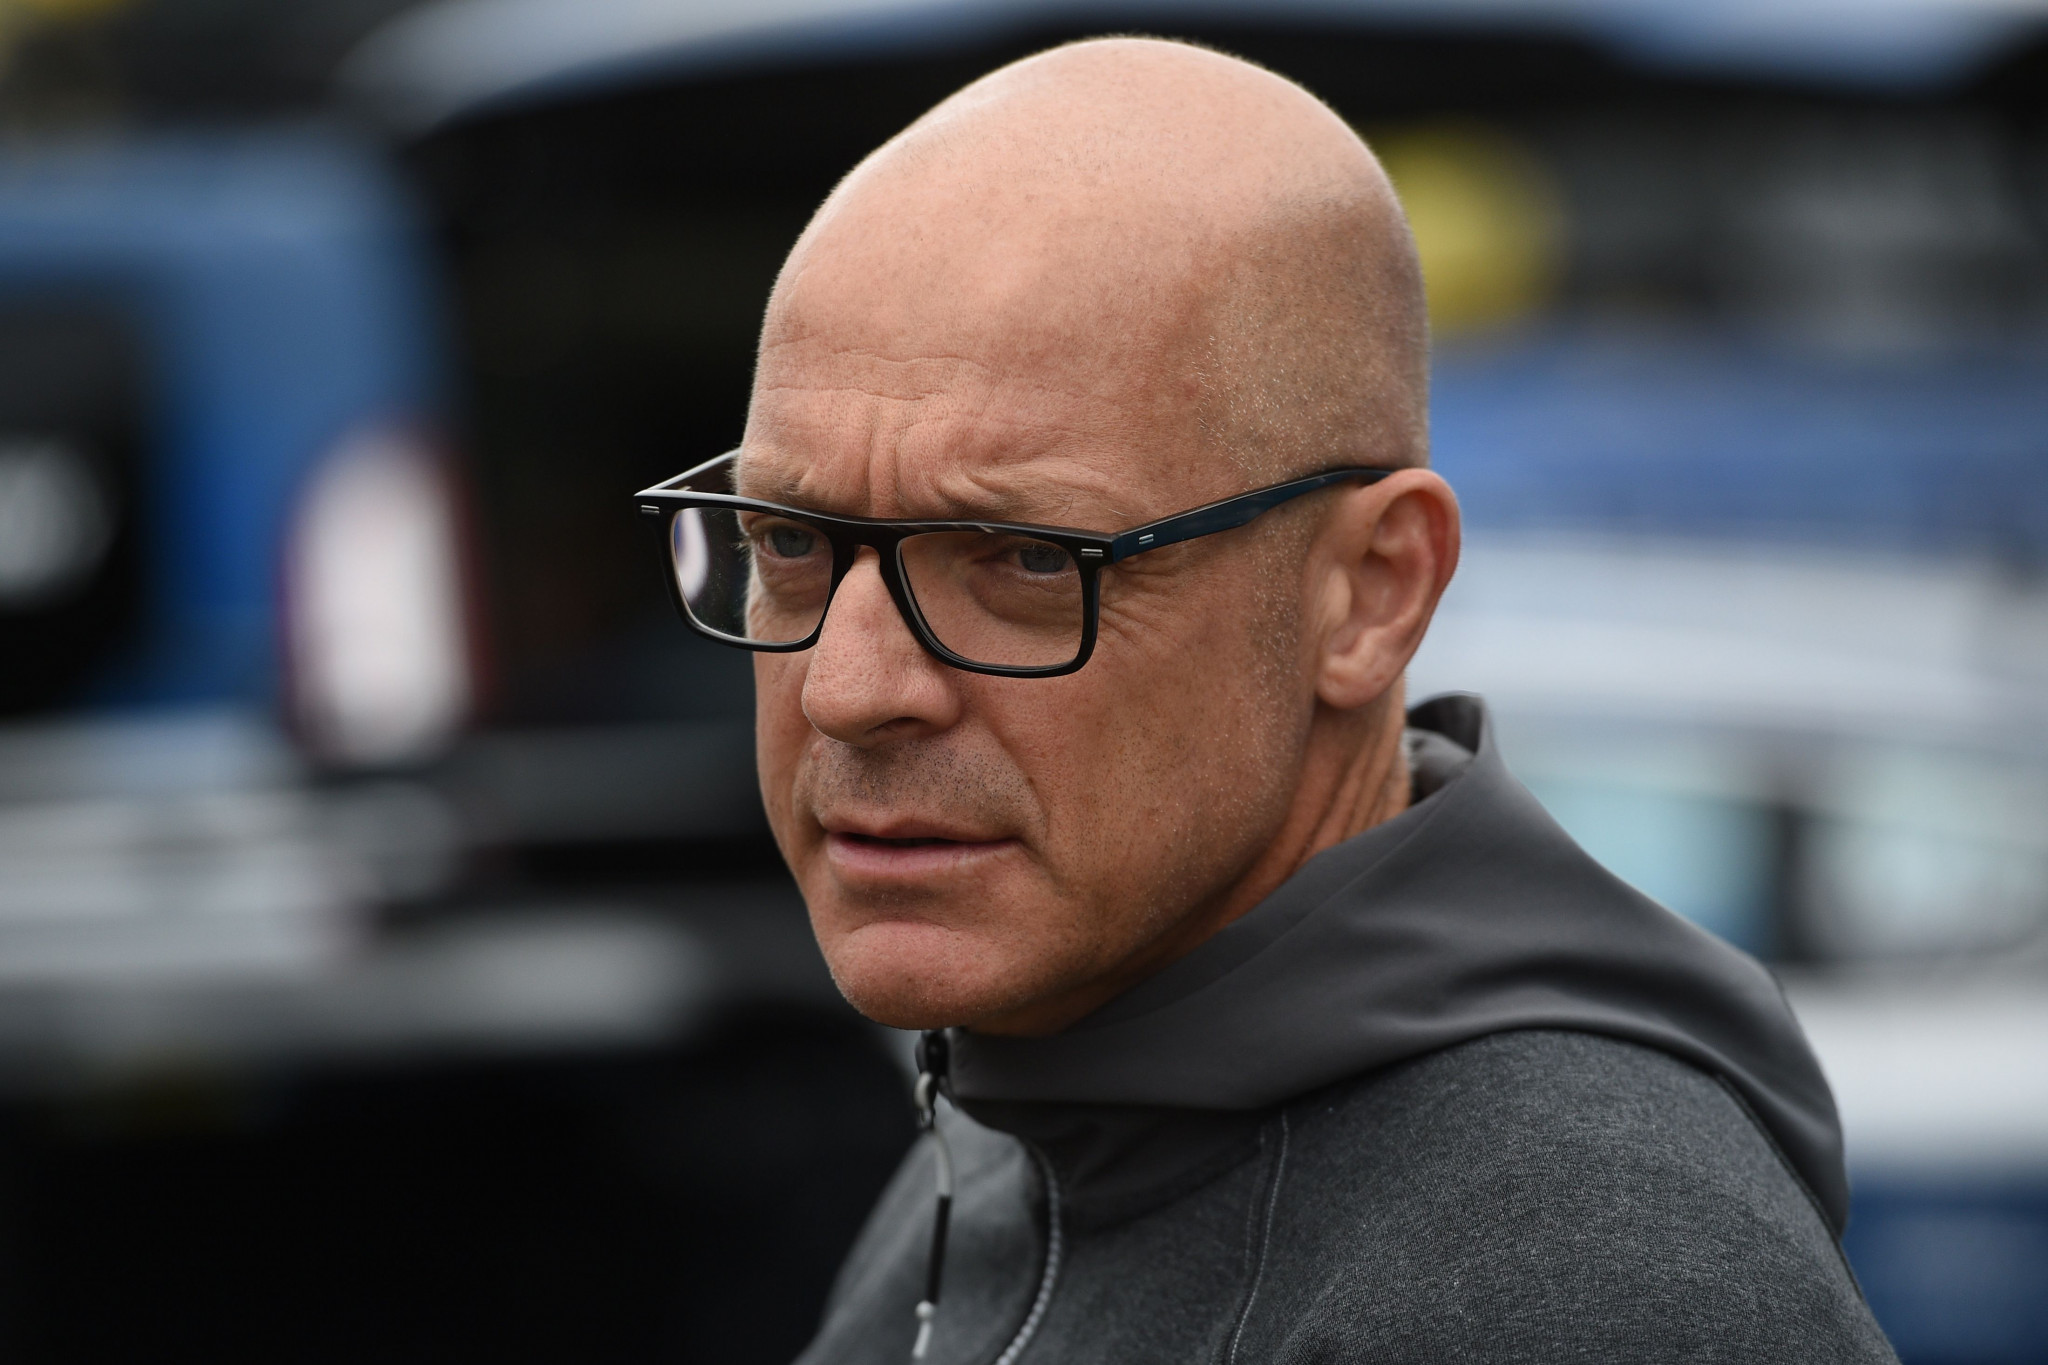 Sir Dave Brailsford welcomed the team's future being secured ©Getty Images